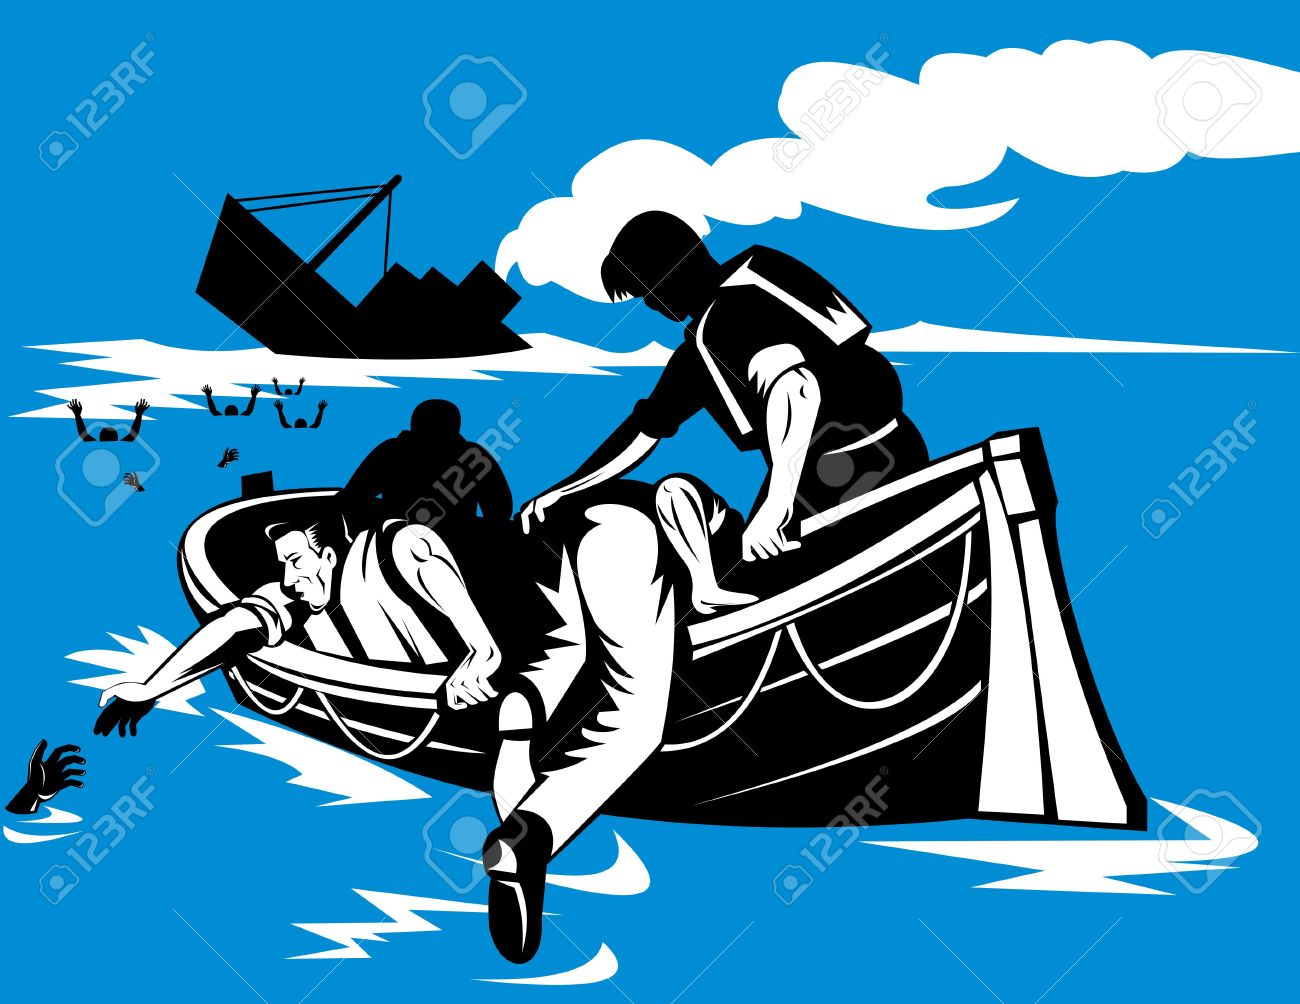 264 Sinking Boat Stock Illustrations, Cliparts And Royalty Free ...